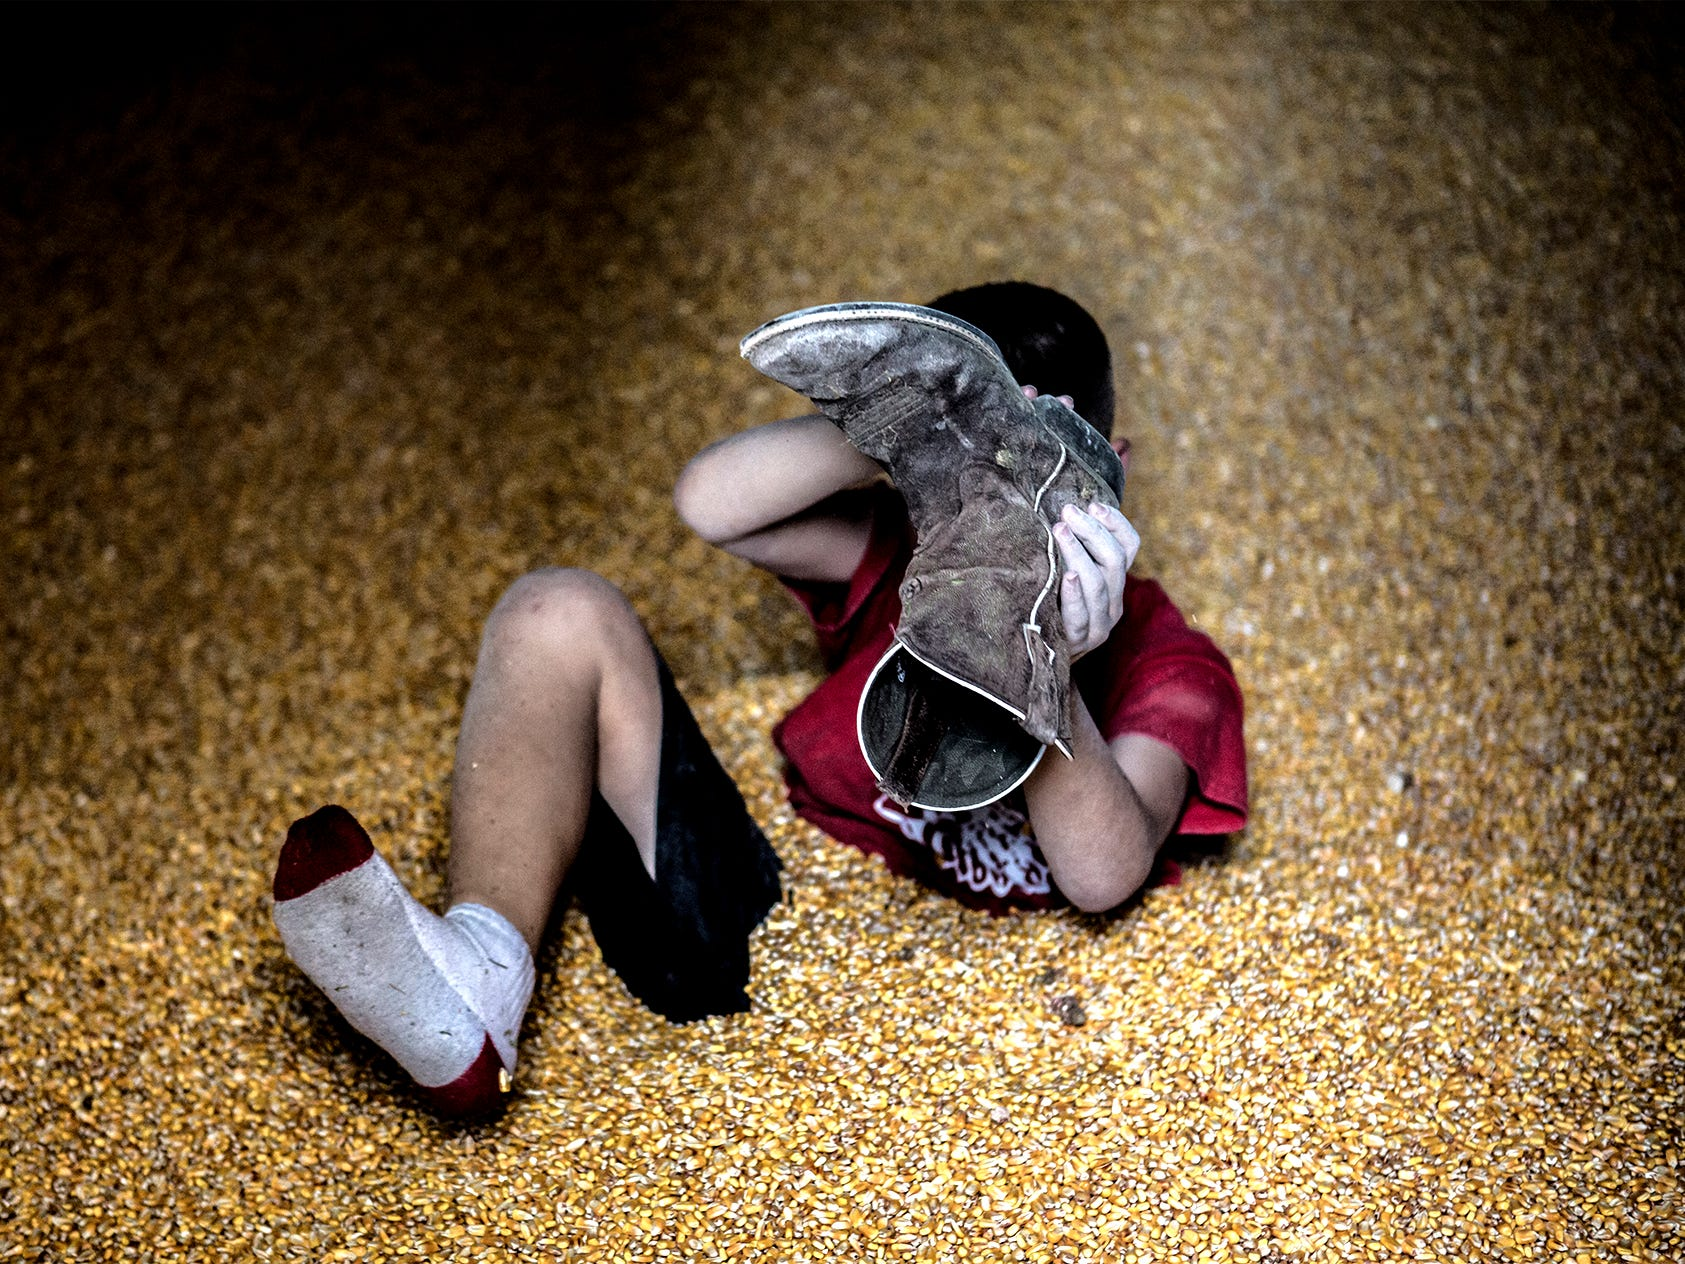 Bryce Hollenback dumps dried corn kernels out of boot after playing in the grain bin while his mom, not pictured, carefully watched to make sure he didn't get hurt in July, 2018. Bryce lives on a the family farm with his parents Andy and Maime and his older brother Aurther. Buying the farm was always Andy's dream and he says he has been fortunate to be successful so far in the 15 years they have owned the property. This year has been a bit different, however, with the tariffs that have been imposed due to President Donald Trump's trade war with China. The Hollenback family is relatively luck though because of their diverse portfolio of crops to fall back on as soy bean prices plummet.